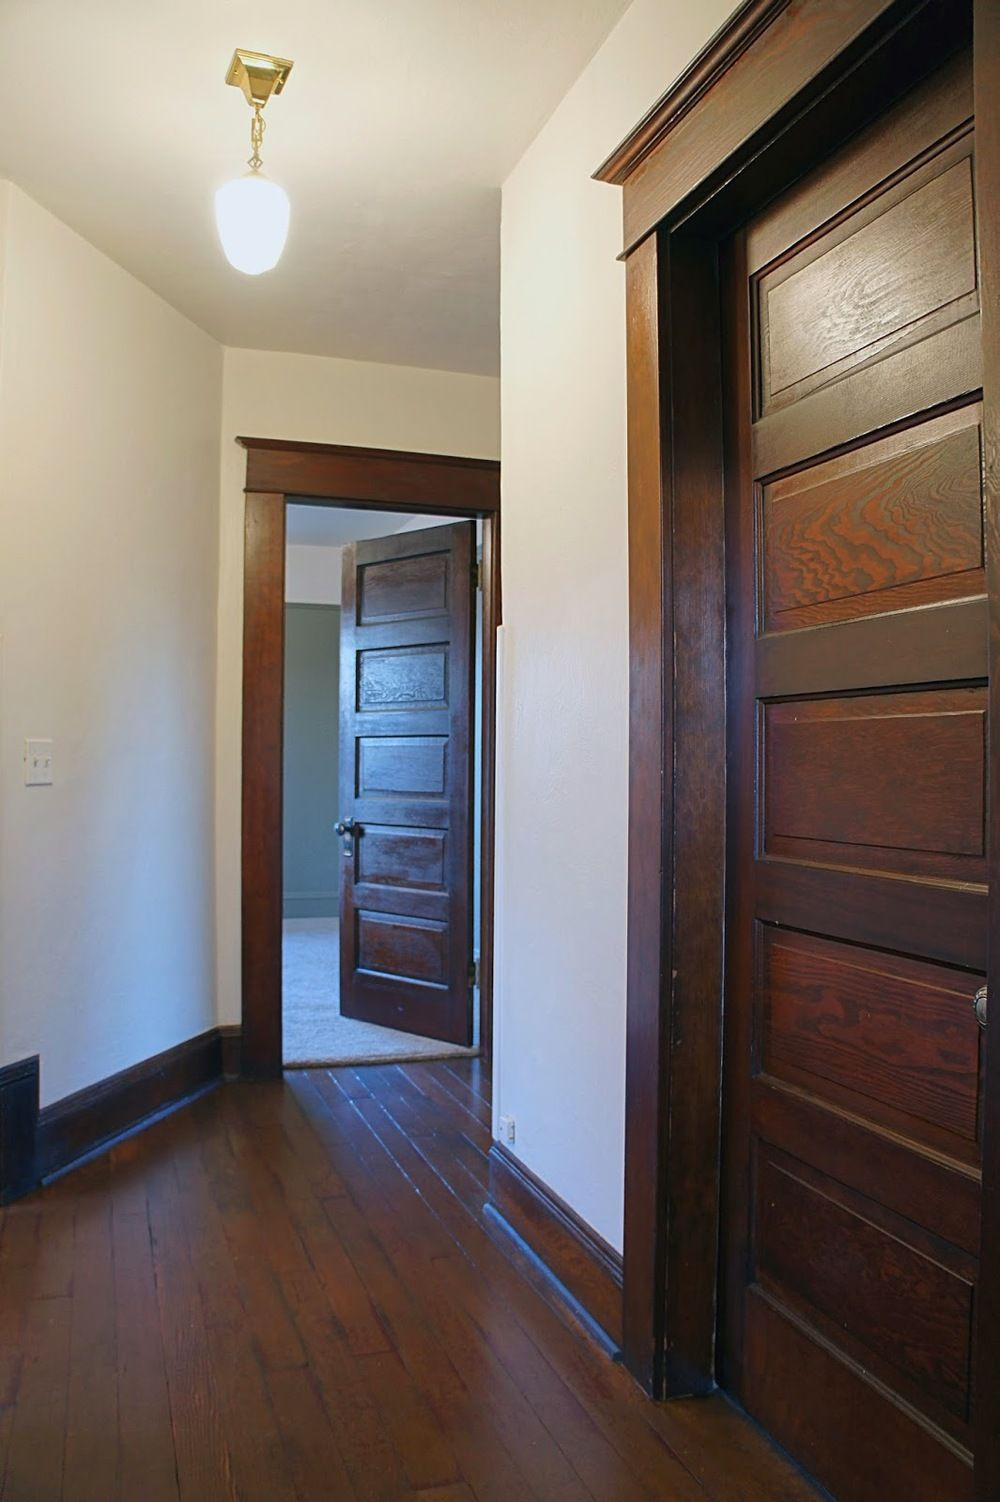 Old portland foursquare a new life trim baseboards - White interior doors with wood trim ...